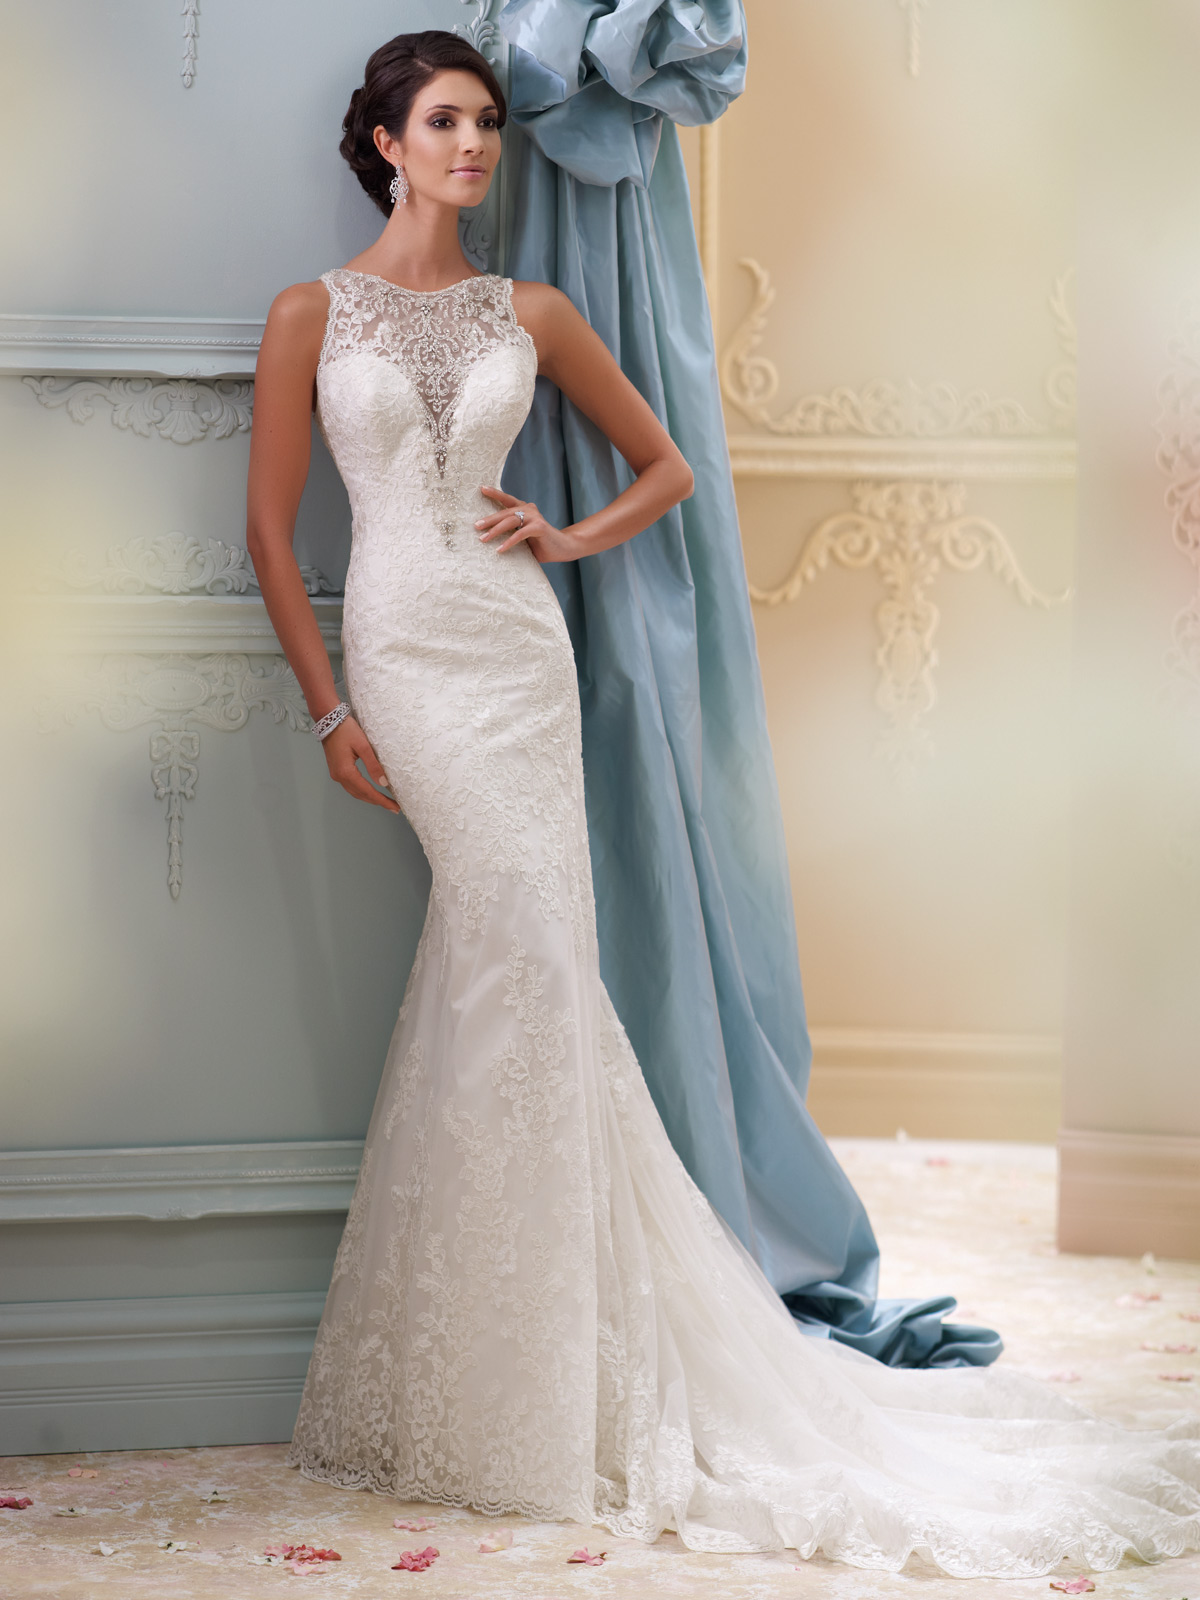 5 spring bridal trends every bride should know about spring bridal trends ombrellifo Choice Image